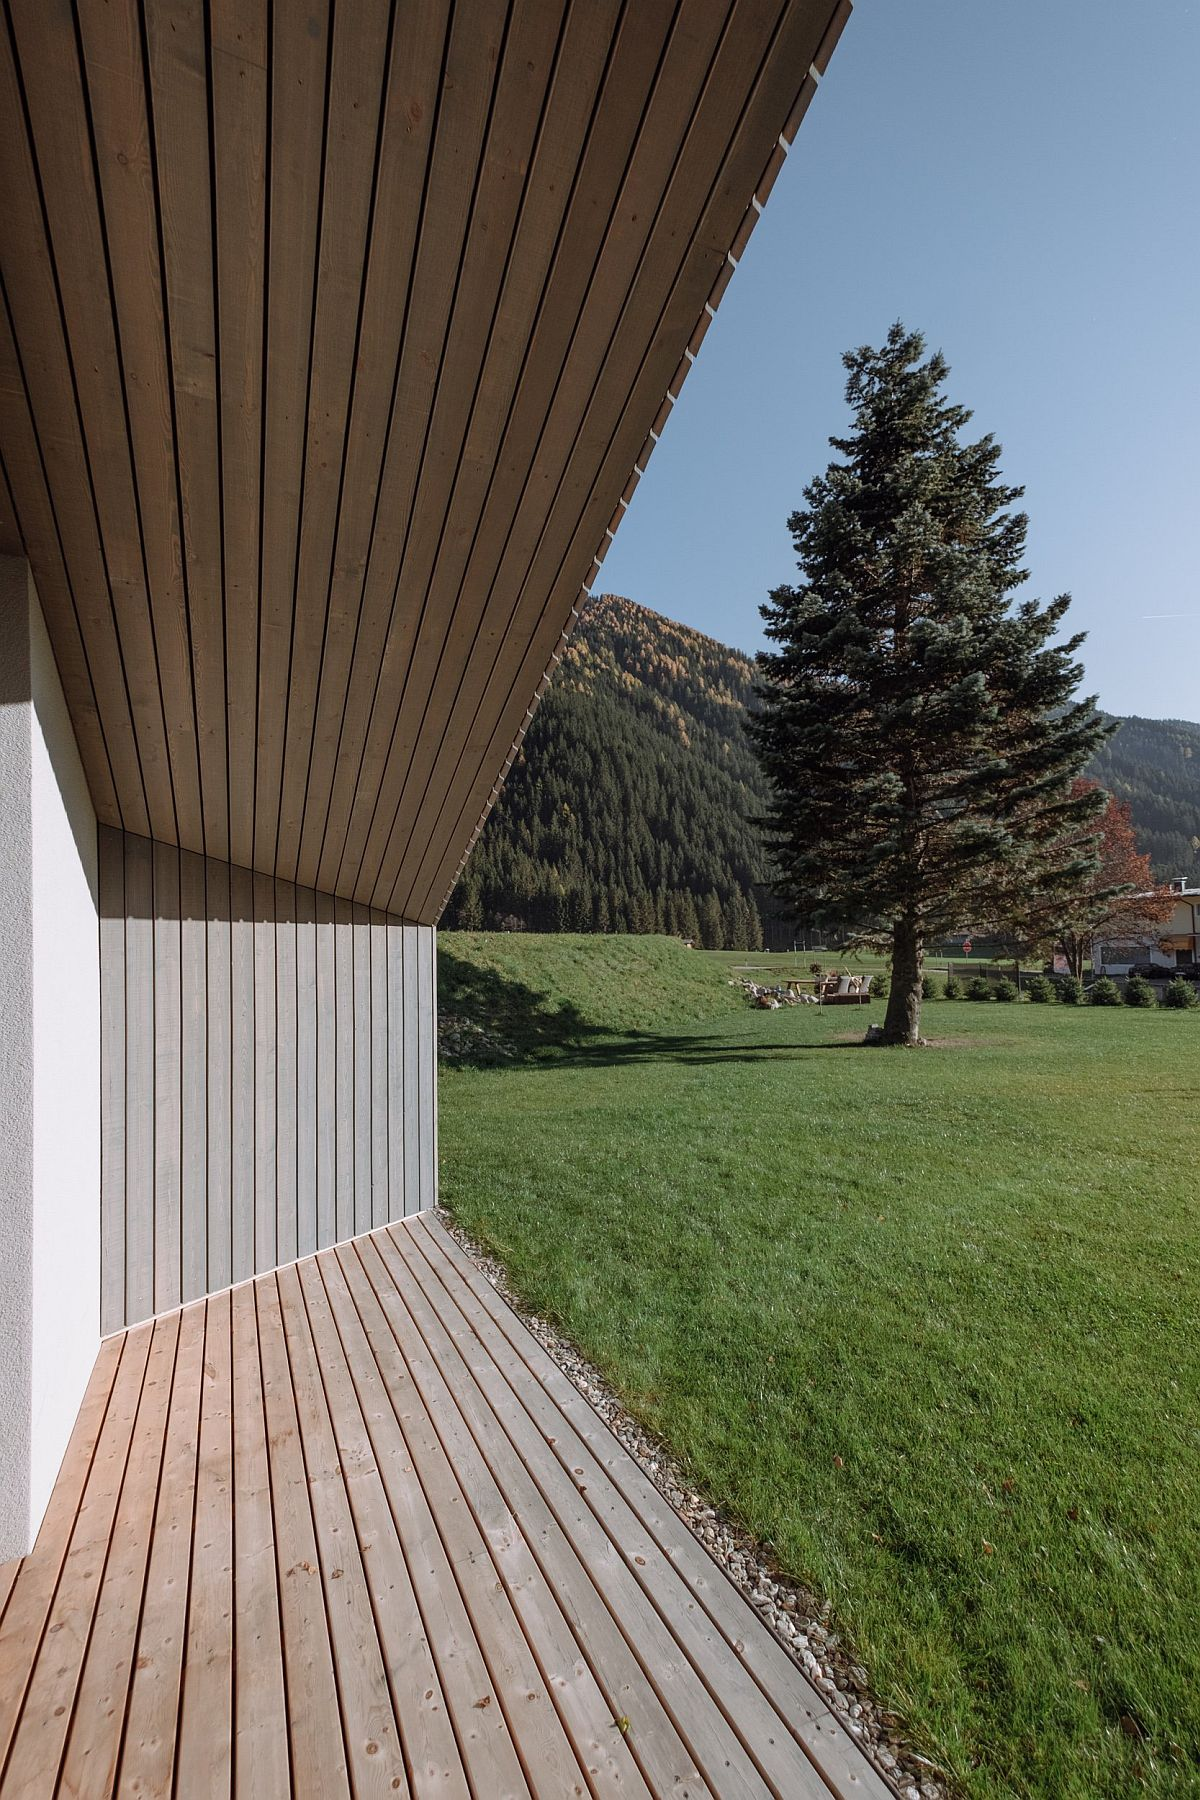 Covering-over-the-house-in-vertical-sawn-rough-boards-provides-shade-to-the-home-during-hotter-months-79252